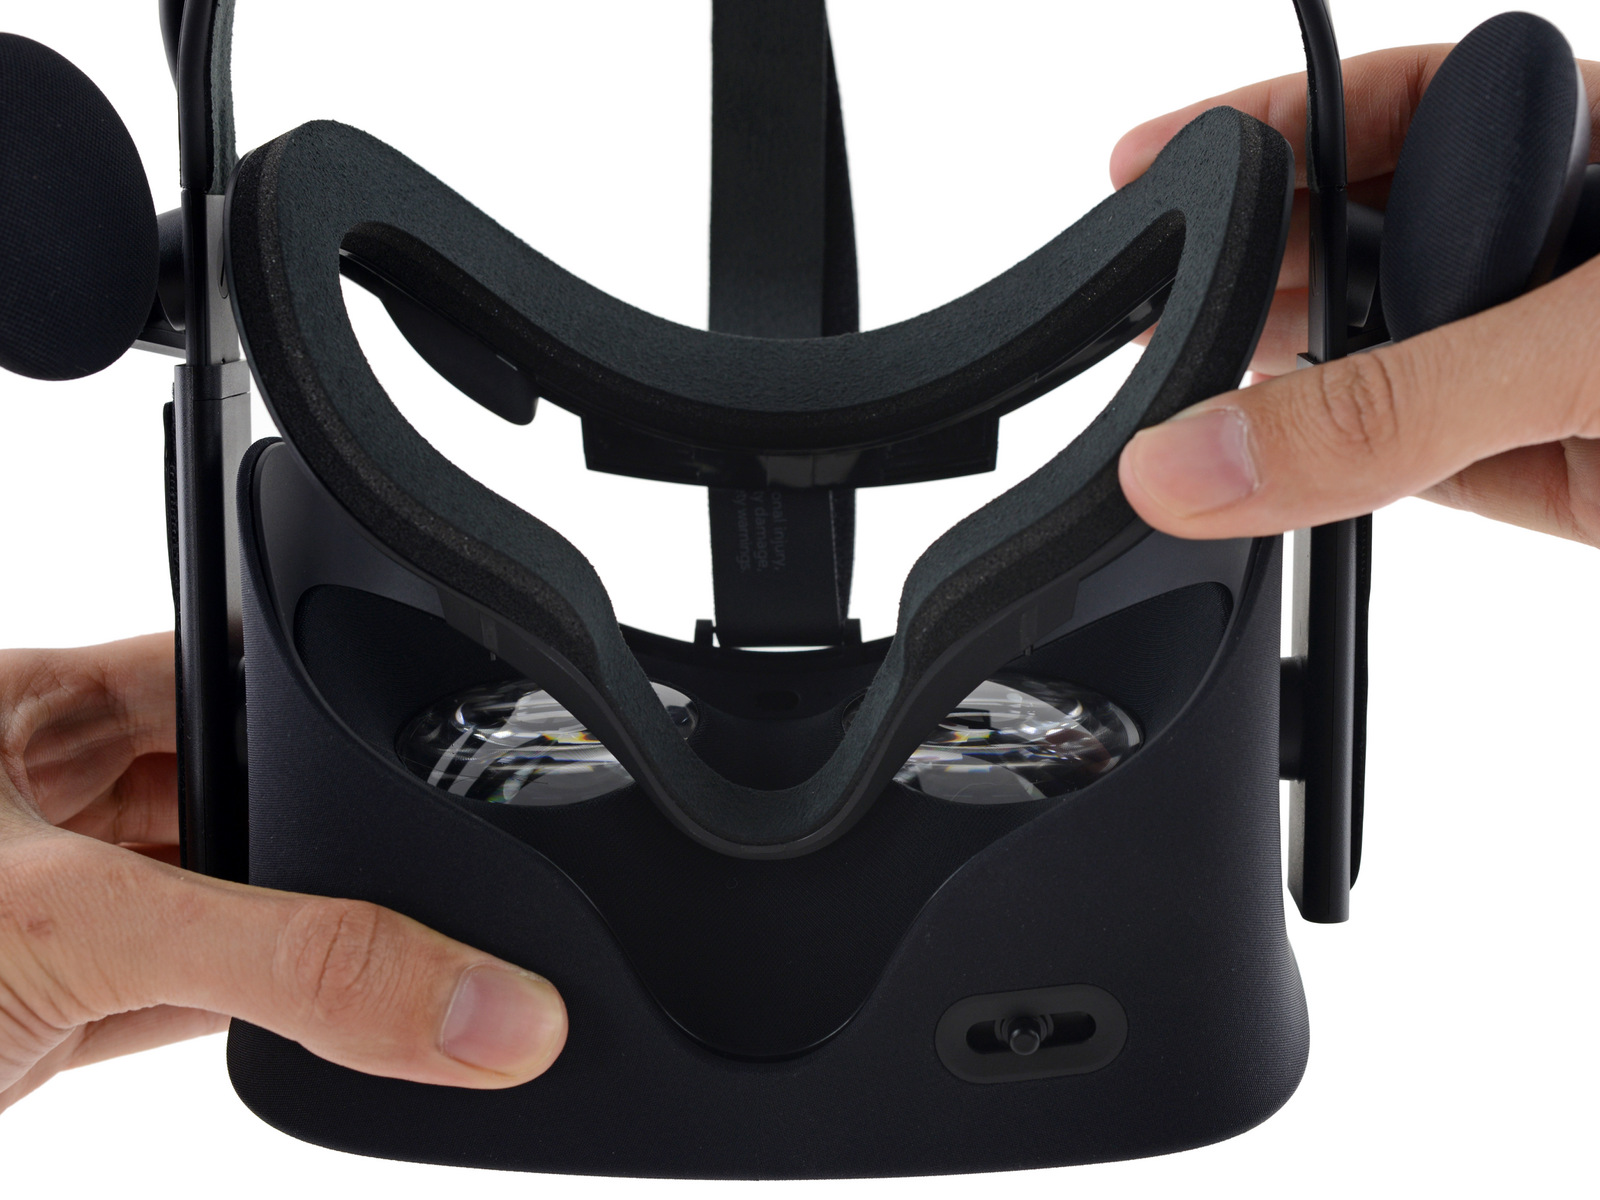 Oculus Rift Teardown 05